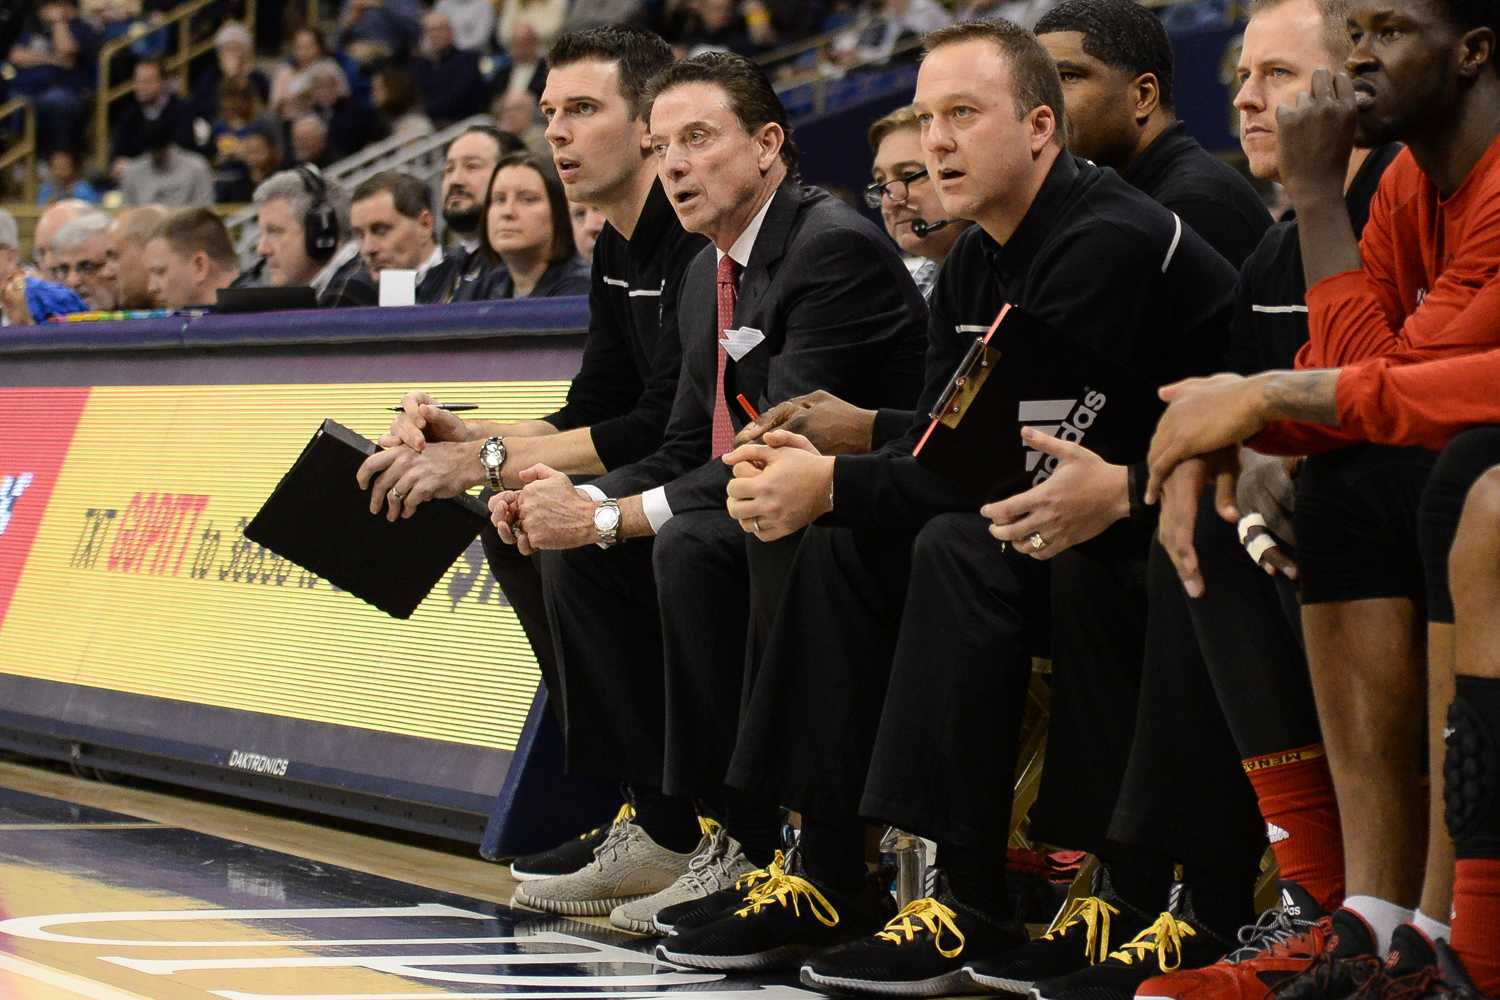 Former Louisville men's basketball head coach Rick Pitino watches from the bench as the Panthers play the Cardinals Jan. 24, 2017, at the Petersen Events Center. (TPN File Photo)